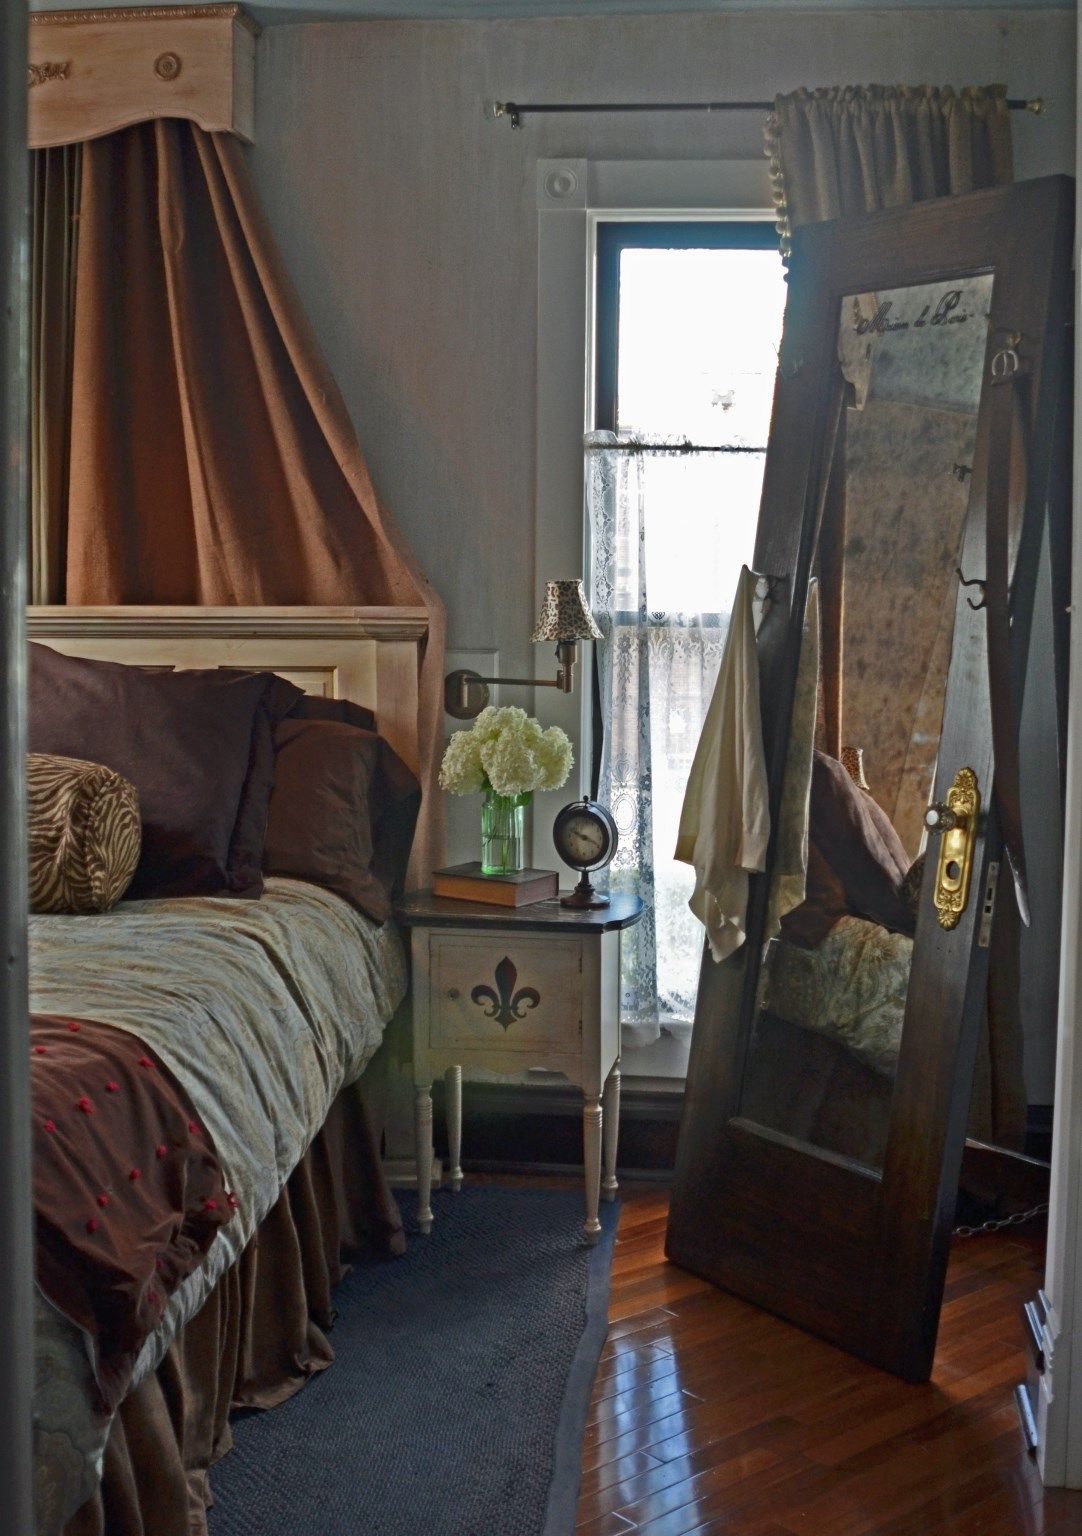 This bedroom features a standing mirror made from a vintage door. Bedroom design and & This bedroom features a standing mirror made from a vintage door ... Pezcame.Com